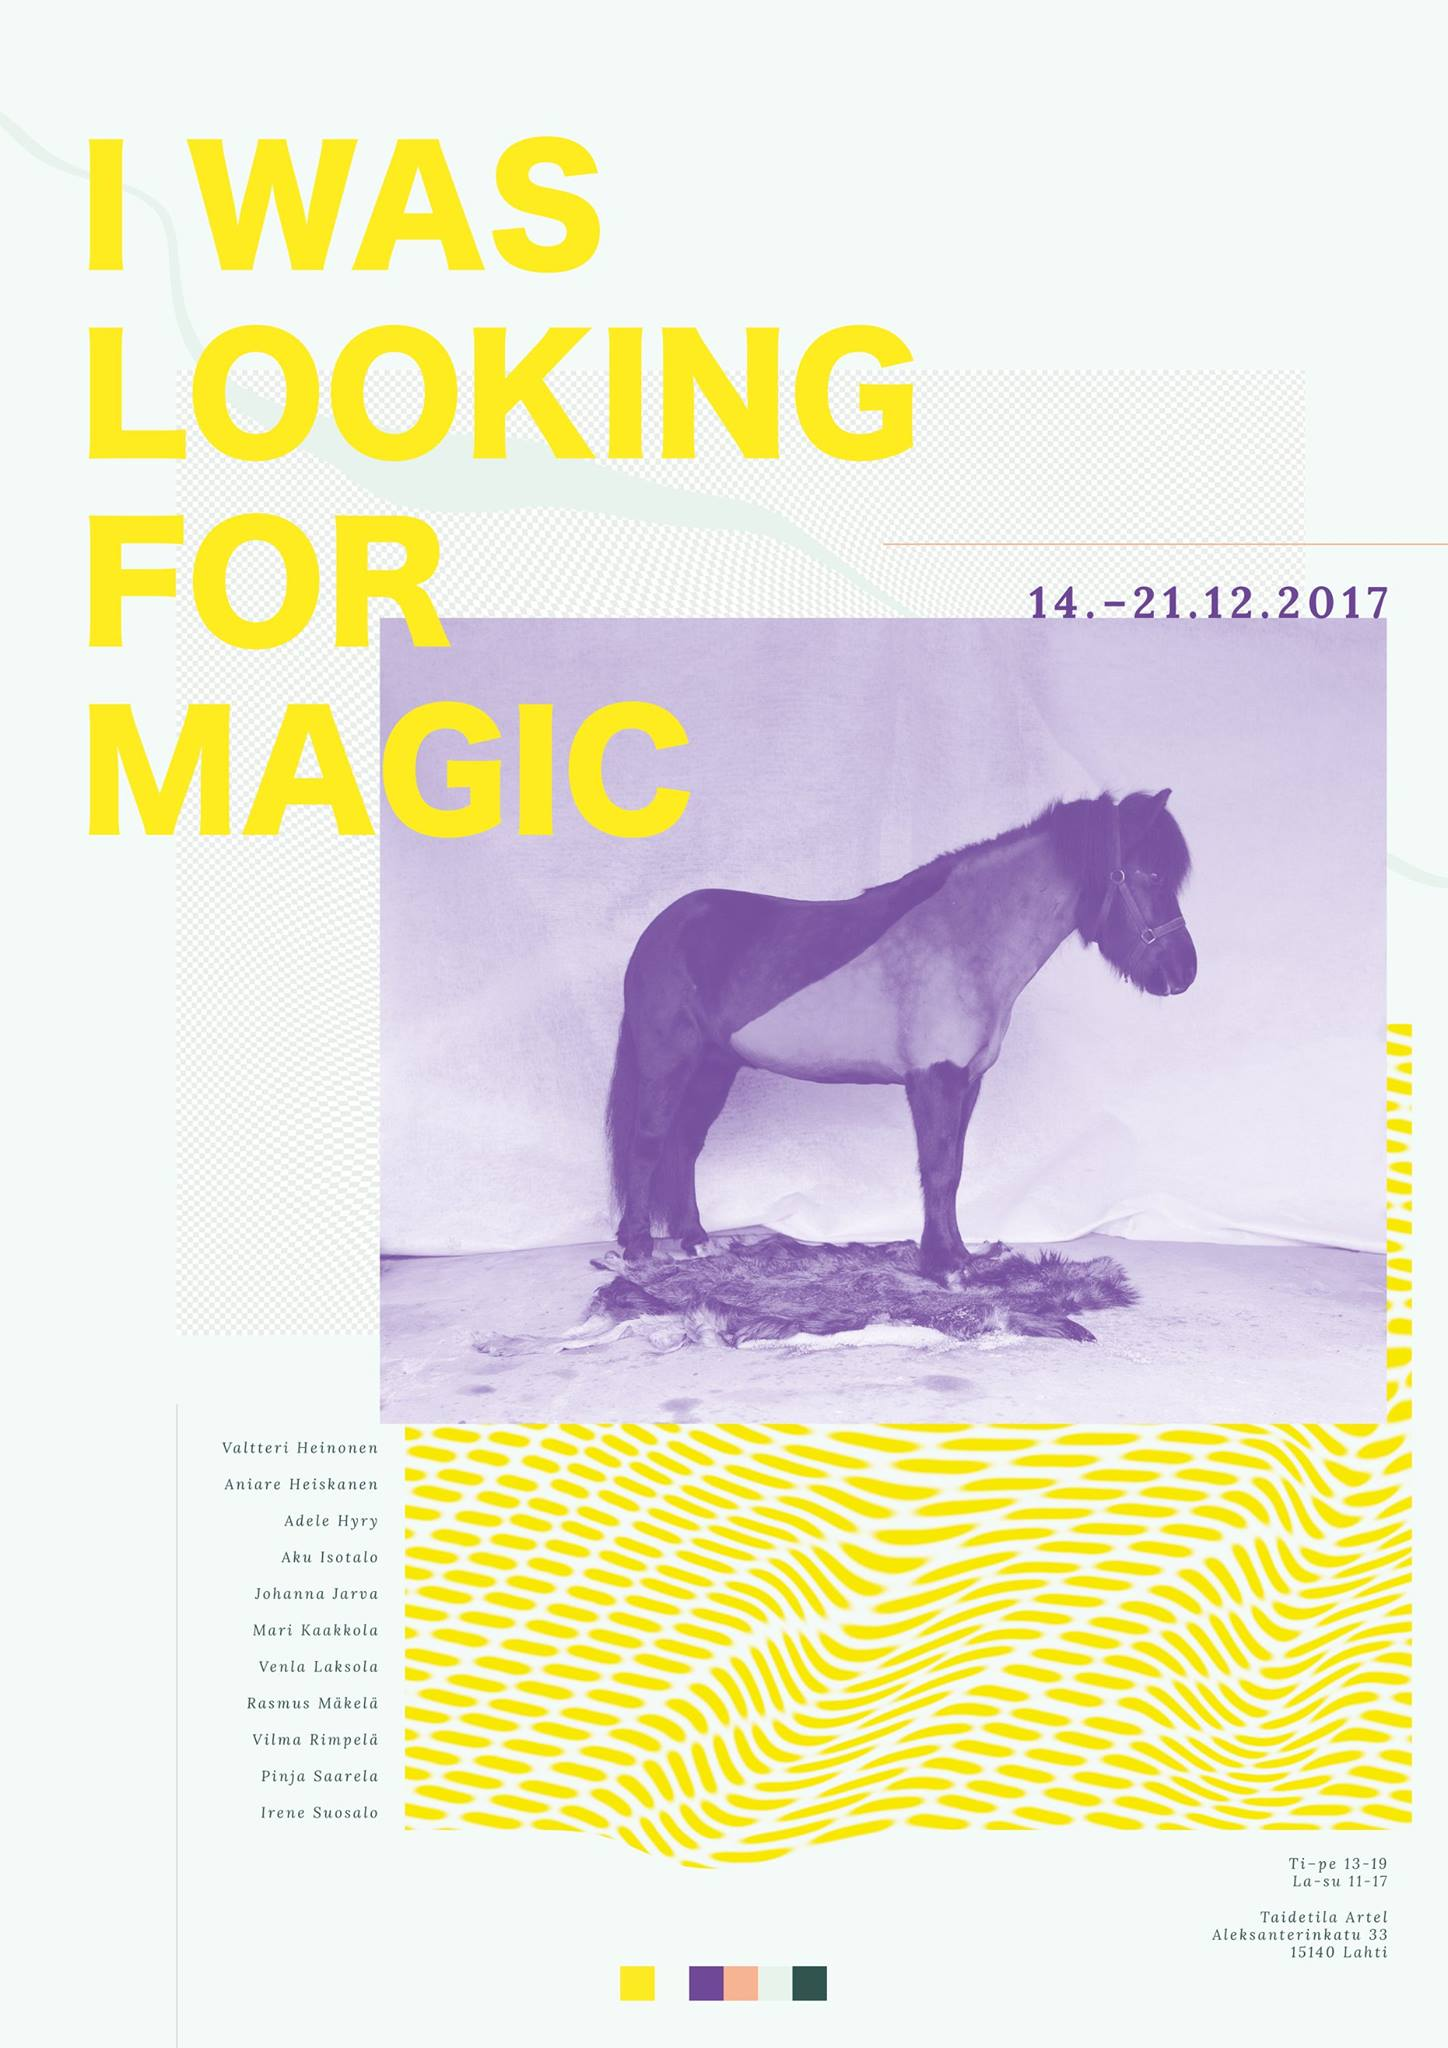 I Was Looking For Magic   Exhibition @ Taidetila Artel, Lahti 14.12 - 22.12.2017  Opening: Thursday 14.12.at 18:00  Facebook event:  I Was Looking For Magic